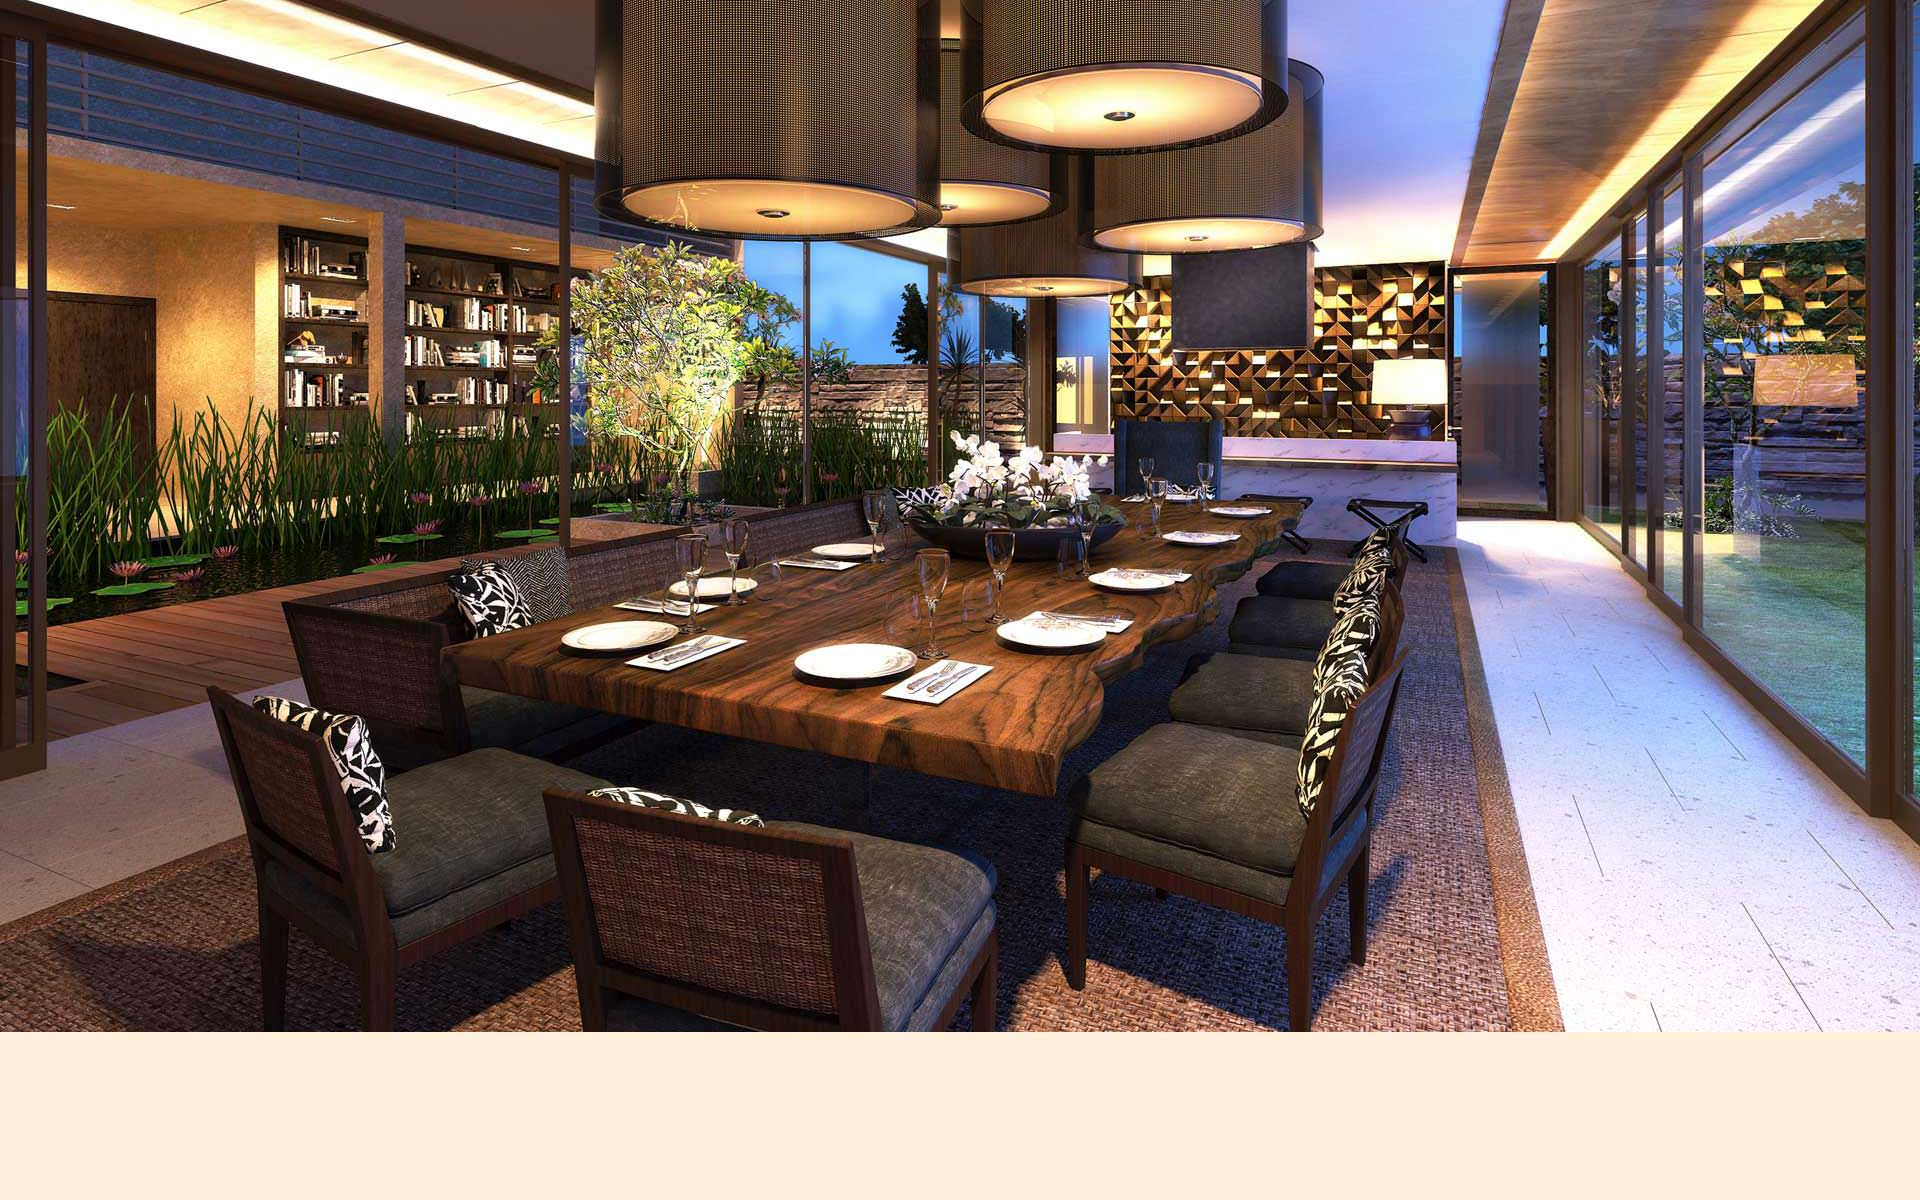 4 Bedroom Villa – Dining Room